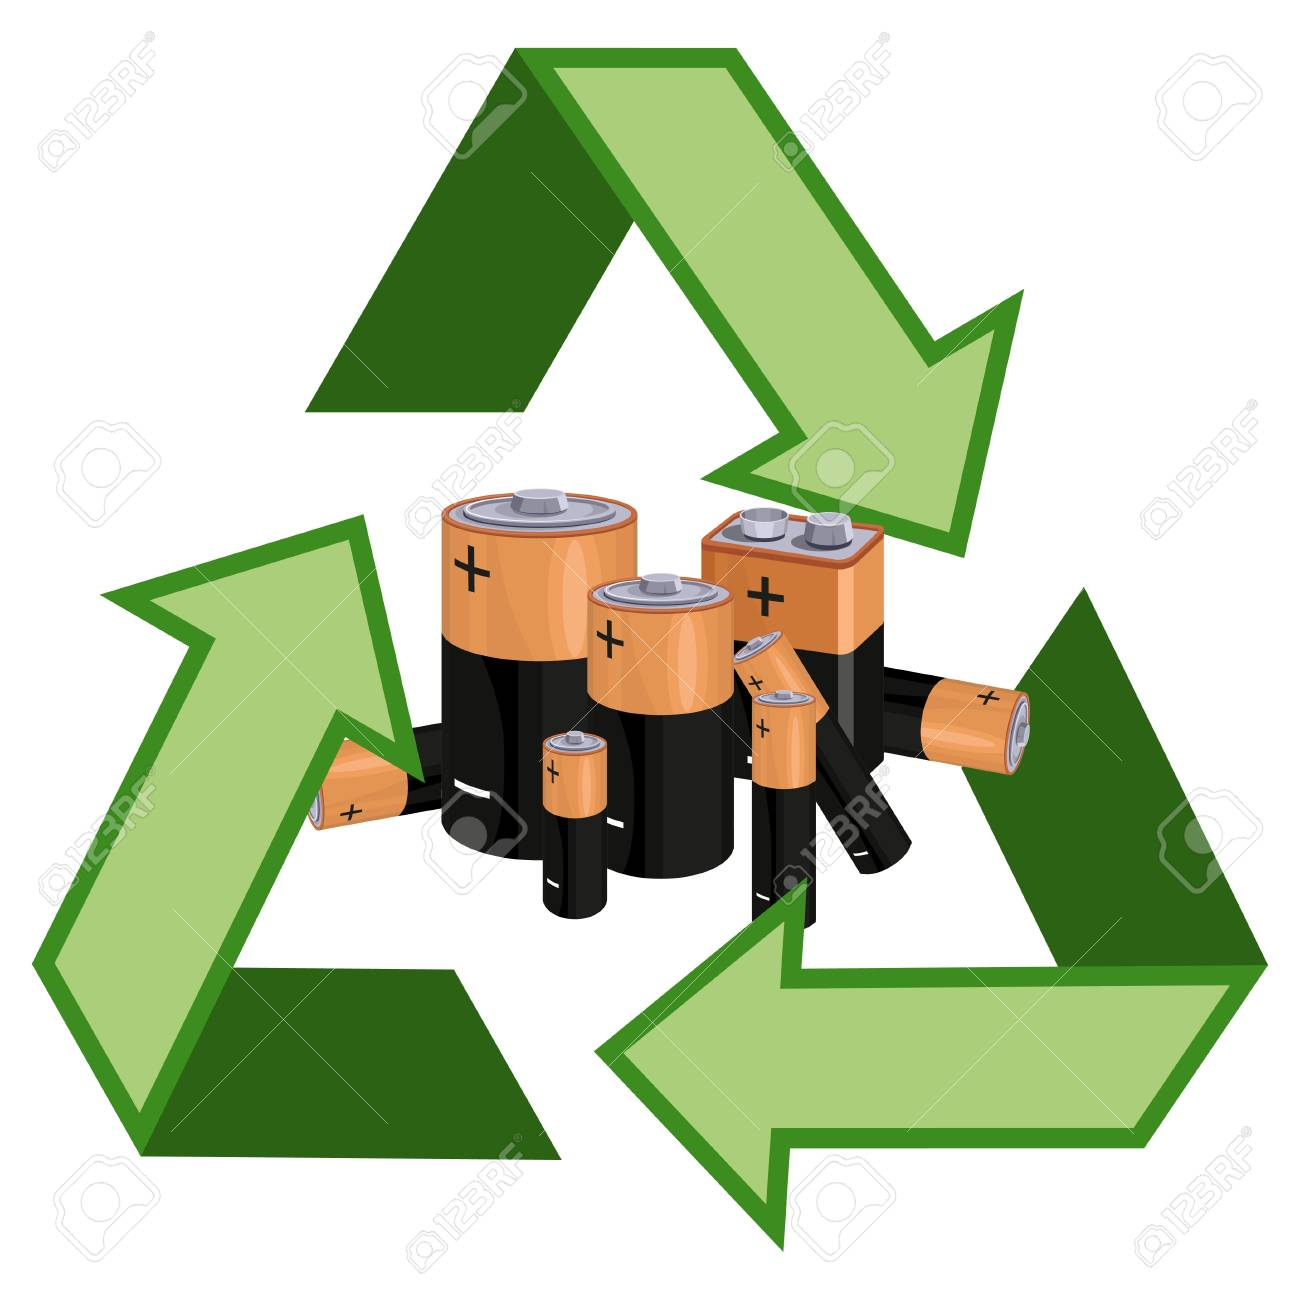 concept of recycle used batteries recycling symbol with used royalty free cliparts vectors and stock illustration image 124802898 concept of recycle used batteries recycling symbol with used